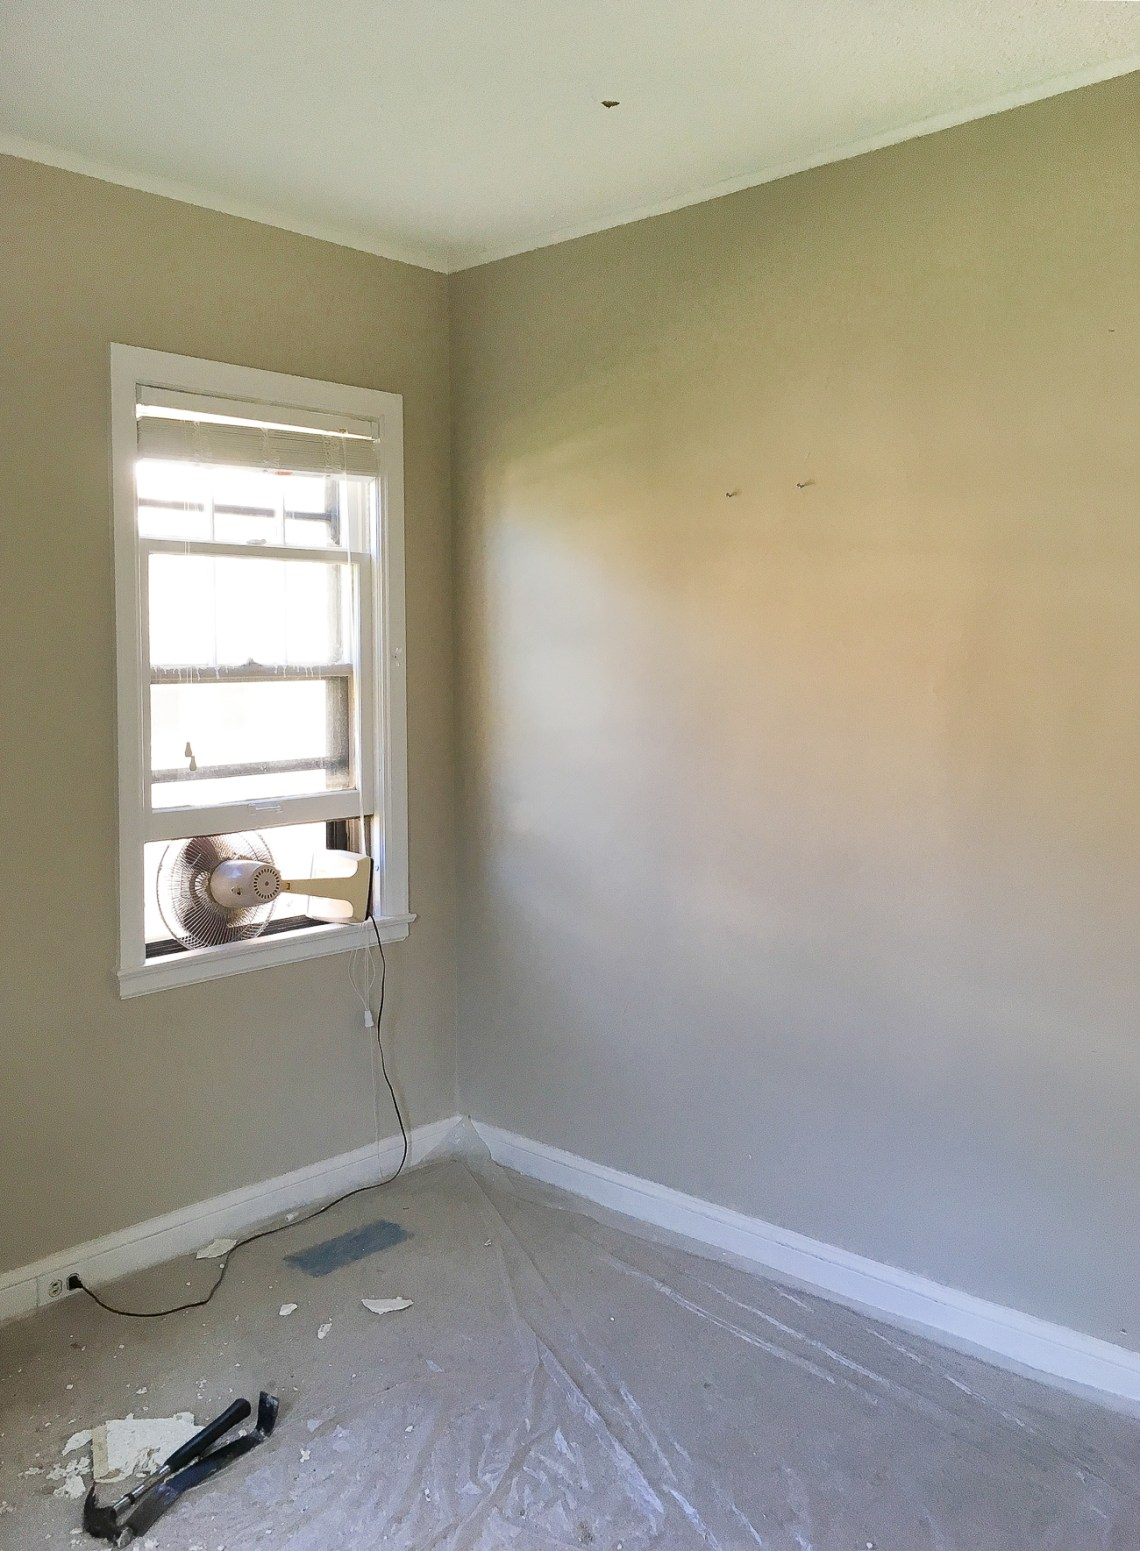 We're kicking off our nursery redesign with before photos of the former guest room. Come see beige overload!